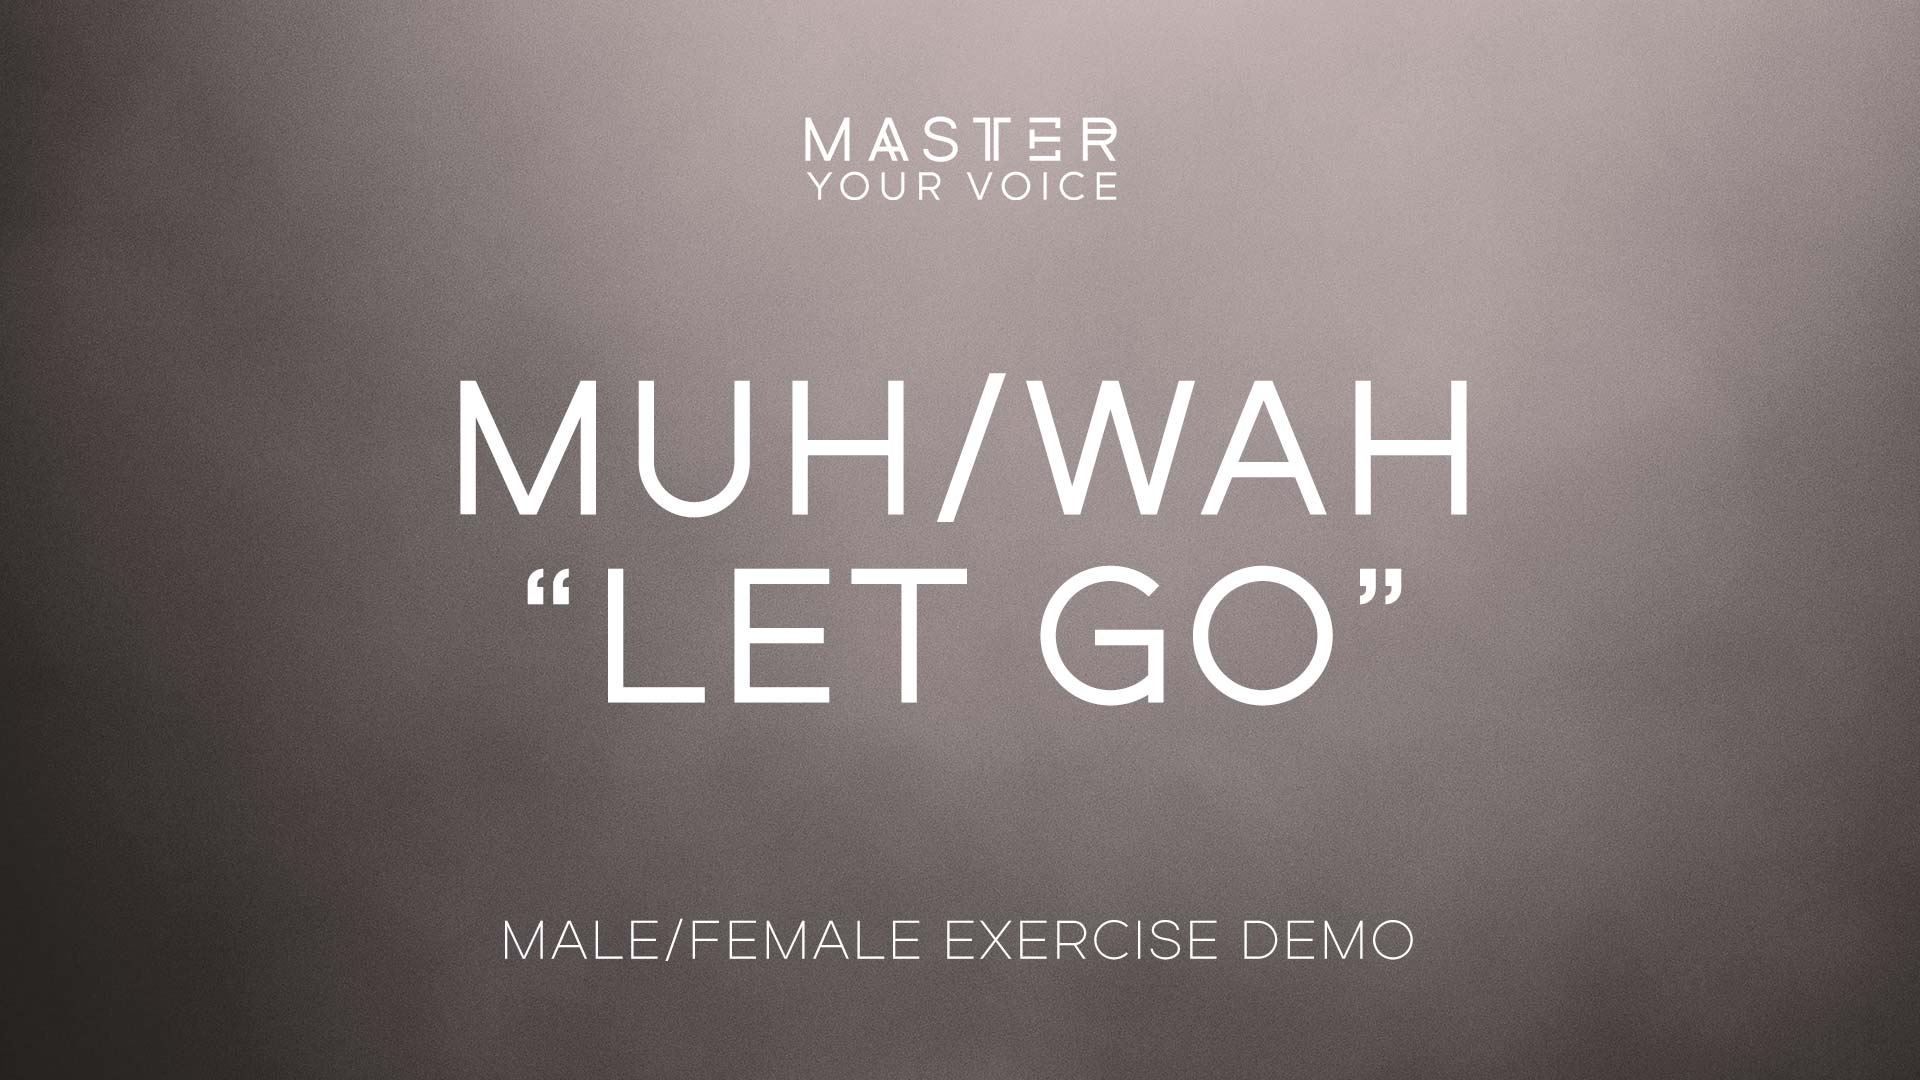 "Muh/Wah ""Let Go"" Exercise Demo"